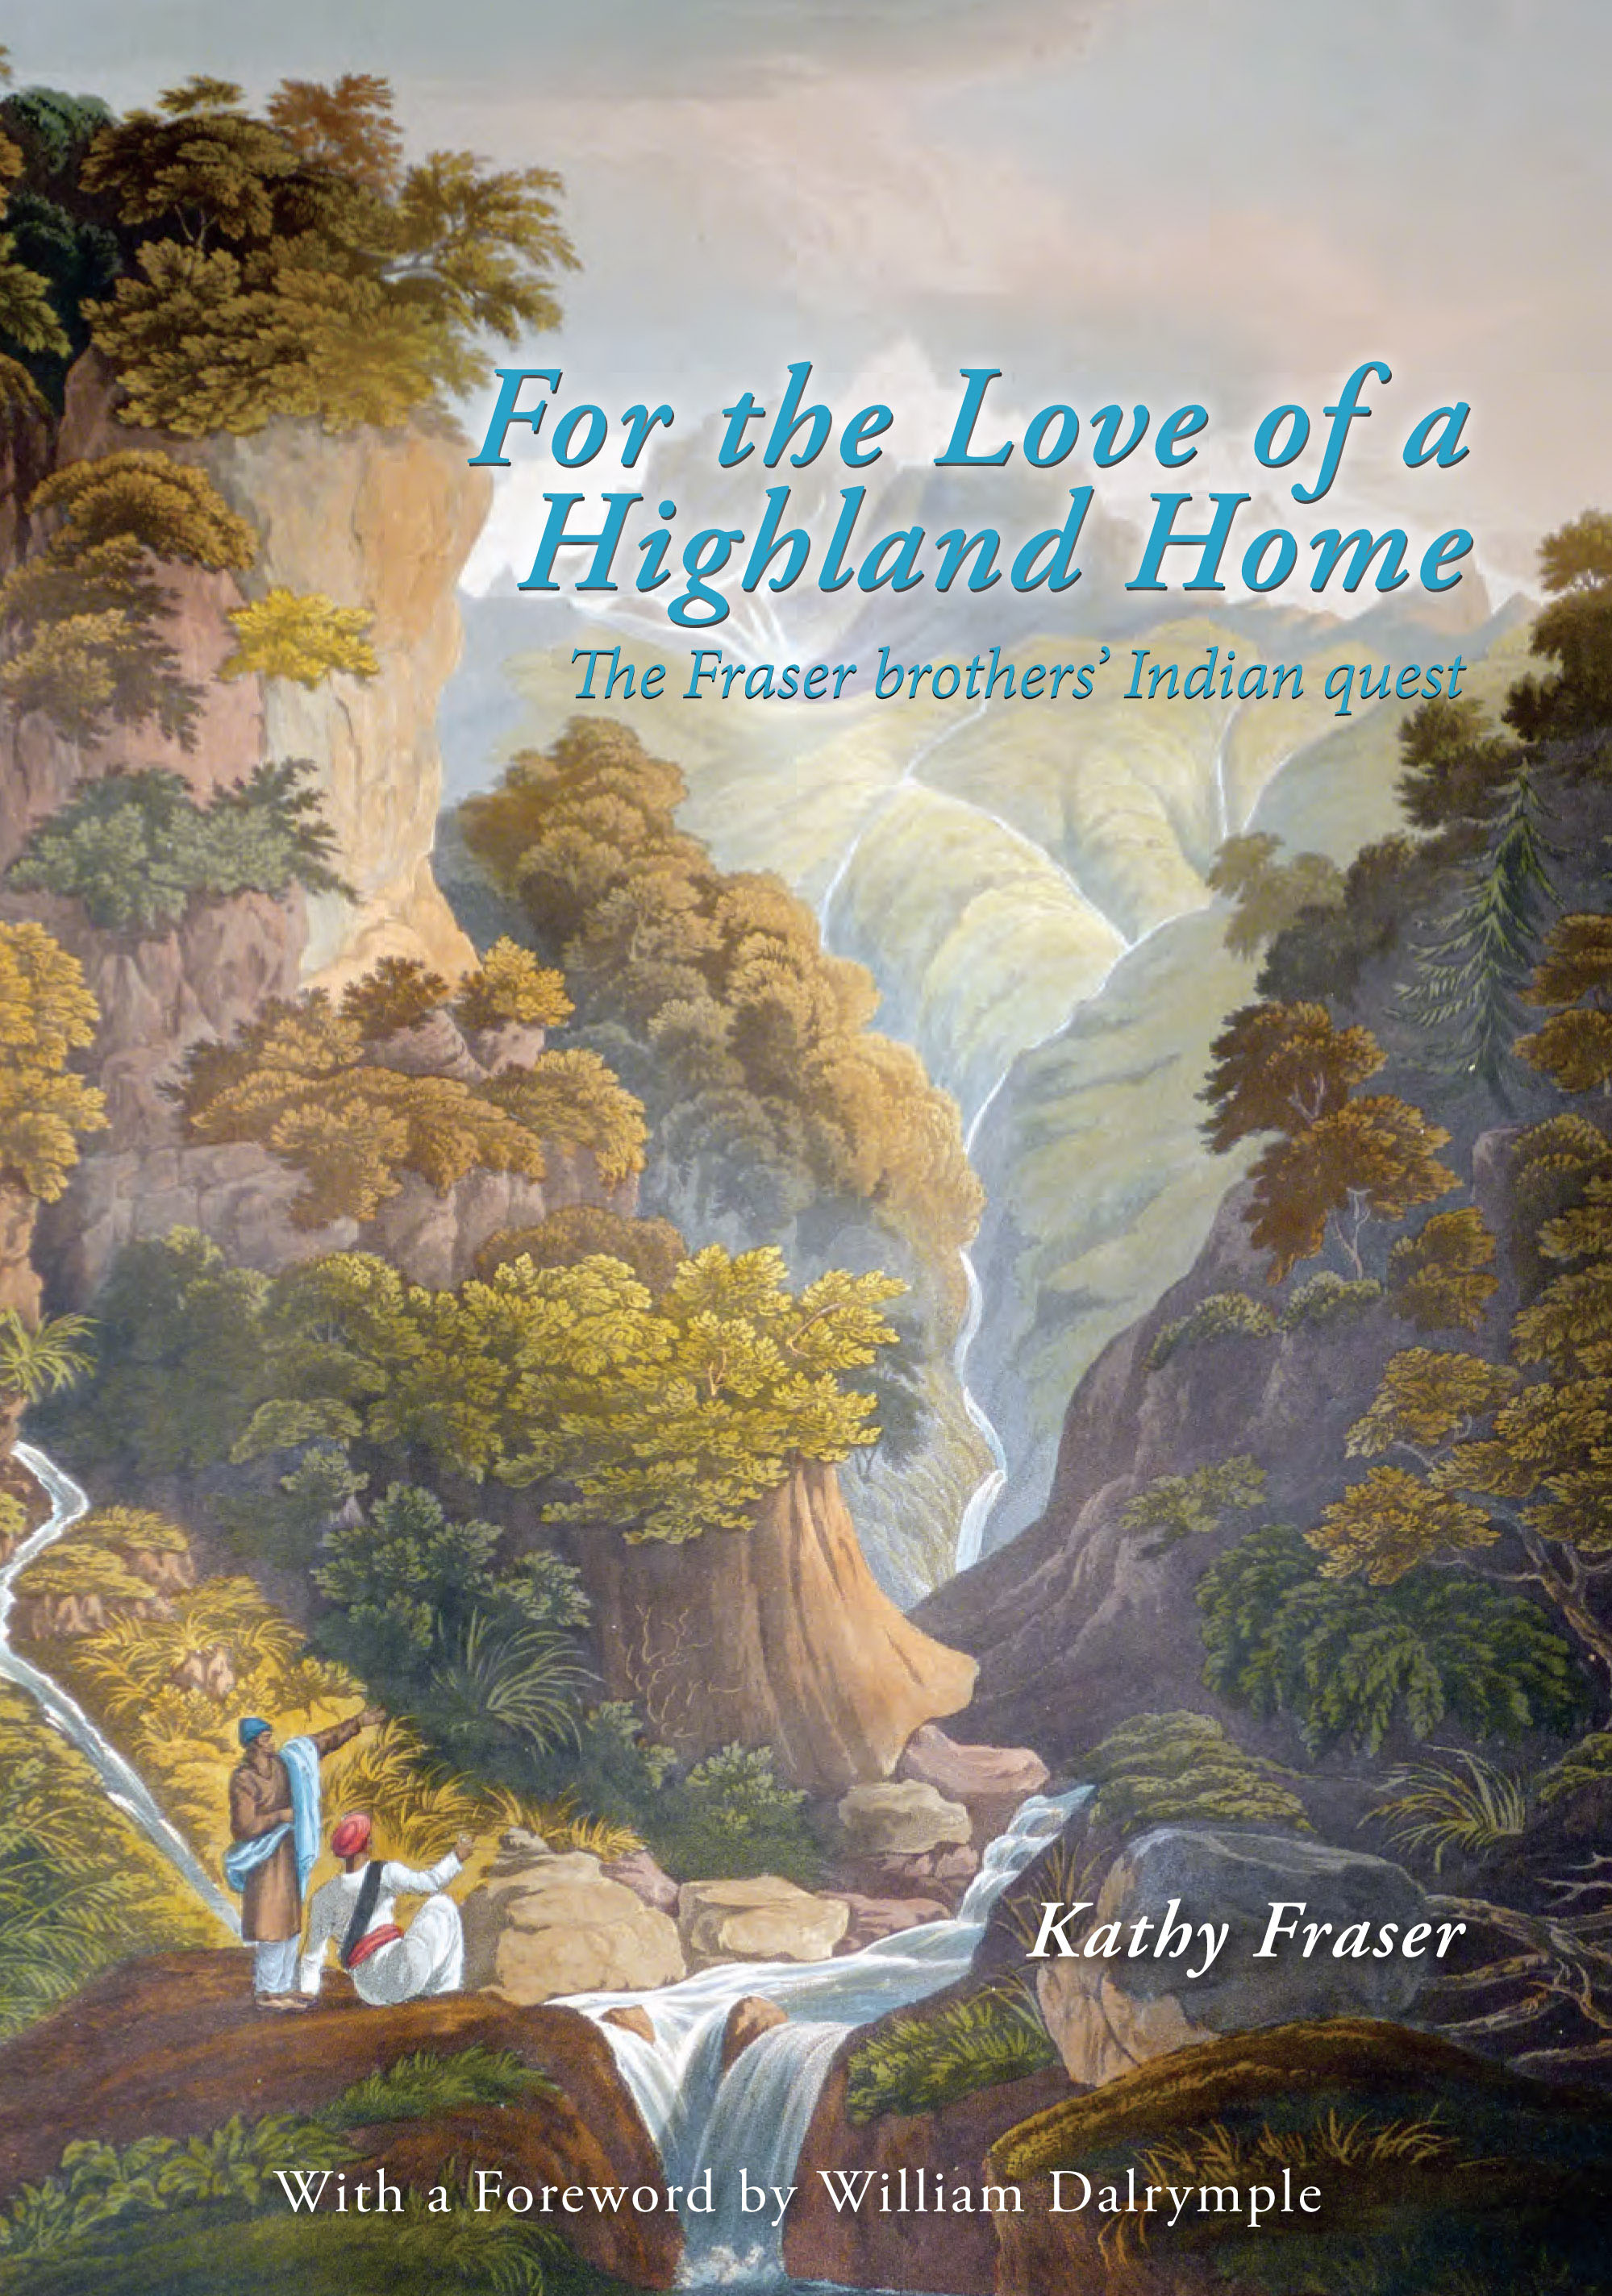 For the love of a highland home book cover